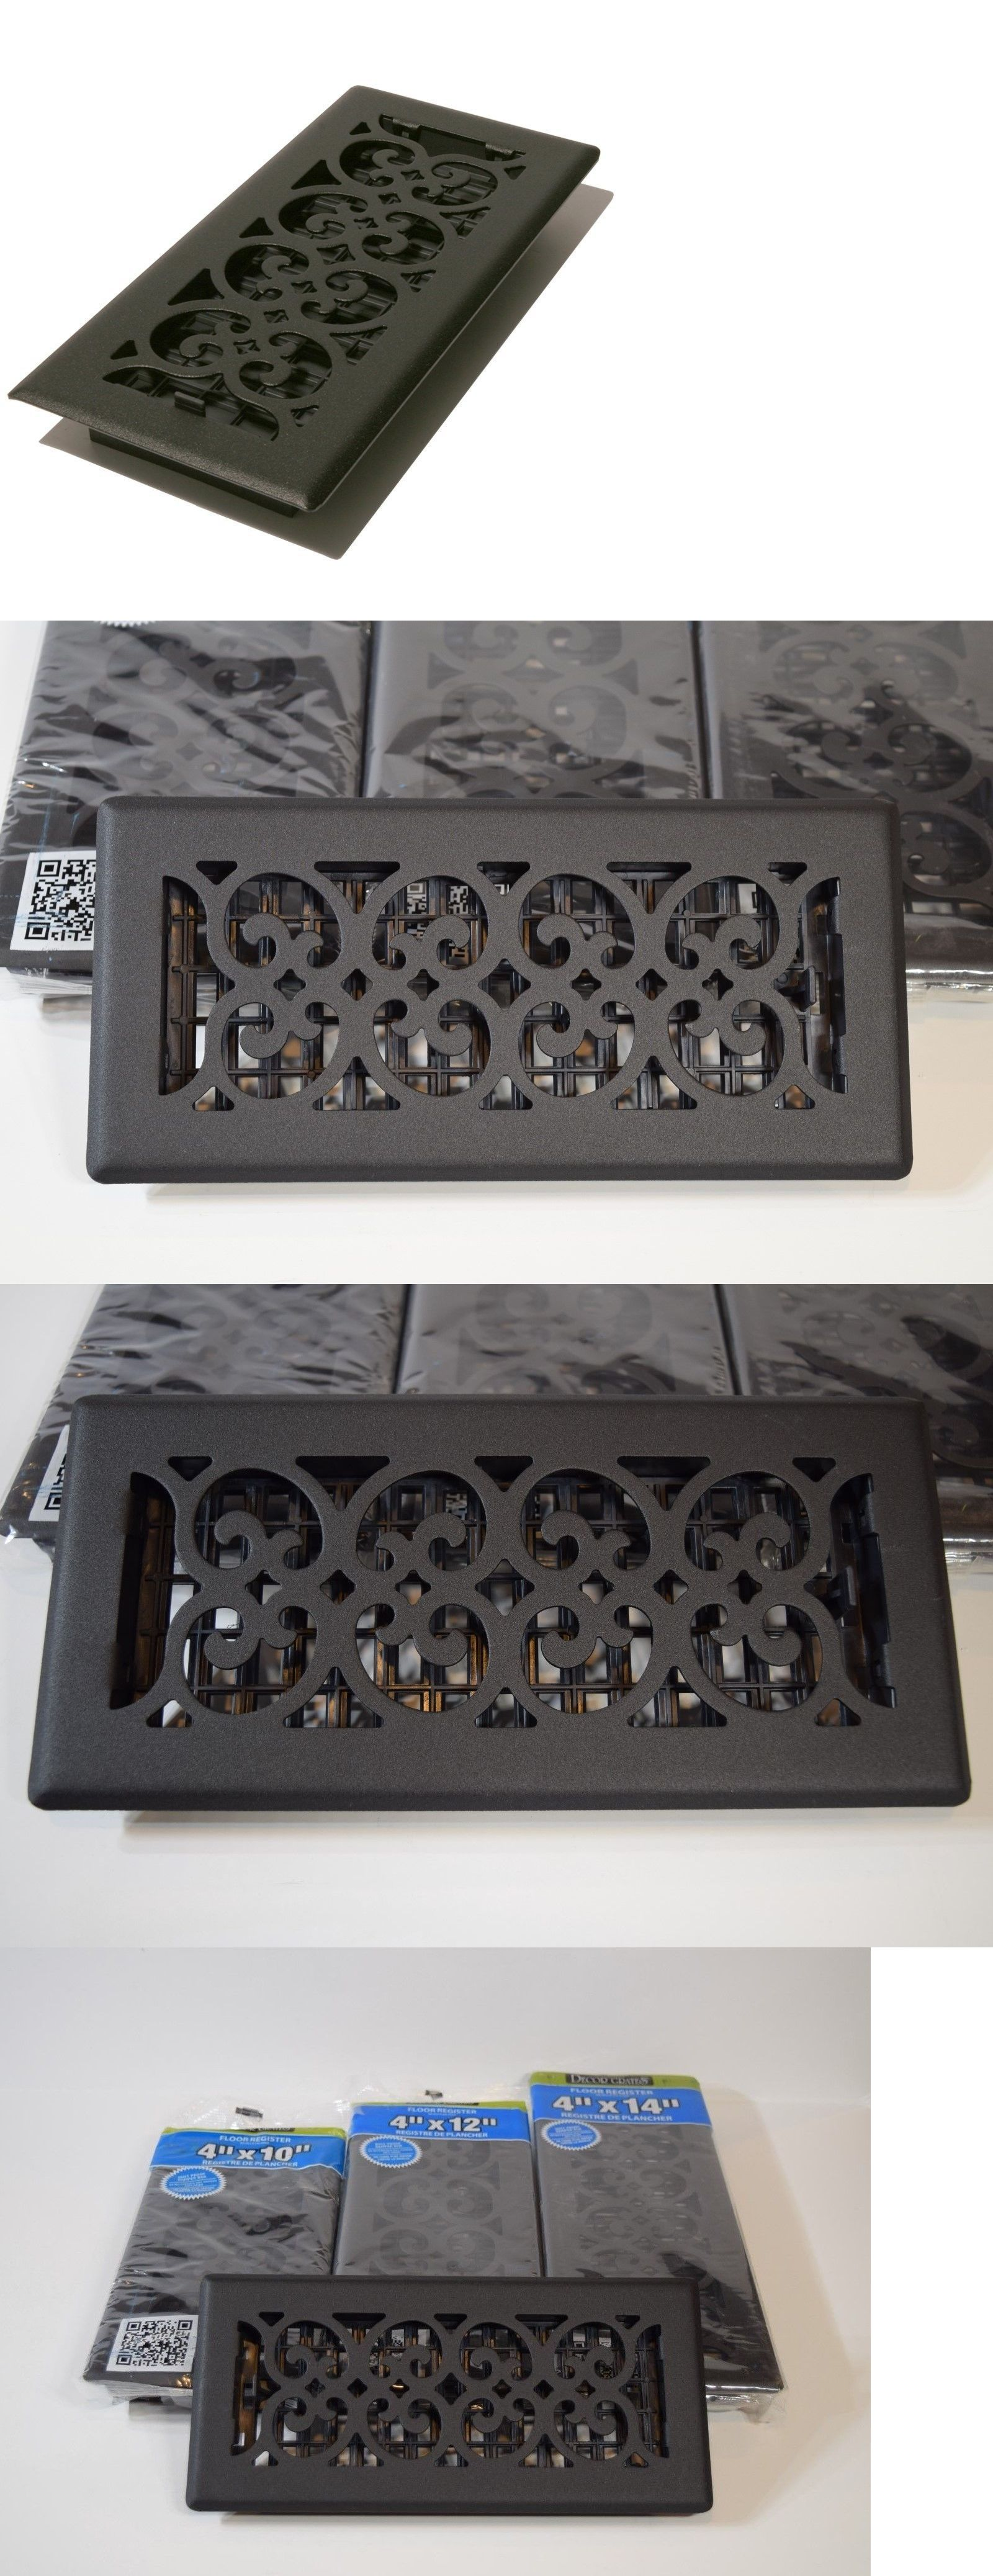 Decor Grates Steel Floor Register Air Vent Scroll Textured Black 4 X 10 X12 X14 Floor Registers Black Steel Steel